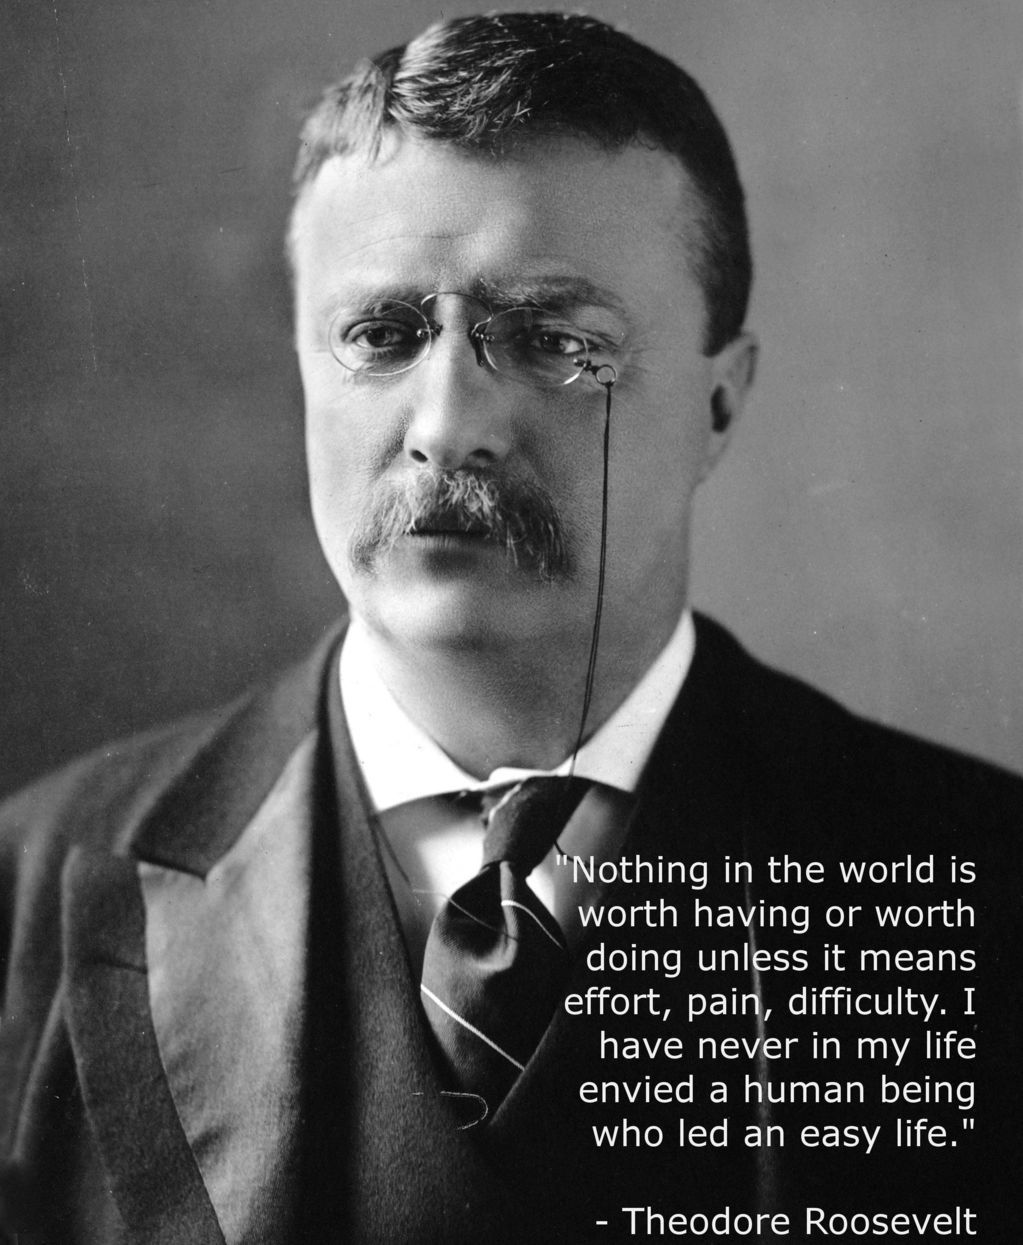 the major achievements of theodore roosevelt Theodore roosevelt jr october 27, 1858 new york city, new york, us died  of all roosevelt's achievements,  roosevelt also played a major role in mediating the first moroccan crisis by calling the algeciras conference, which averted war between france and germany.